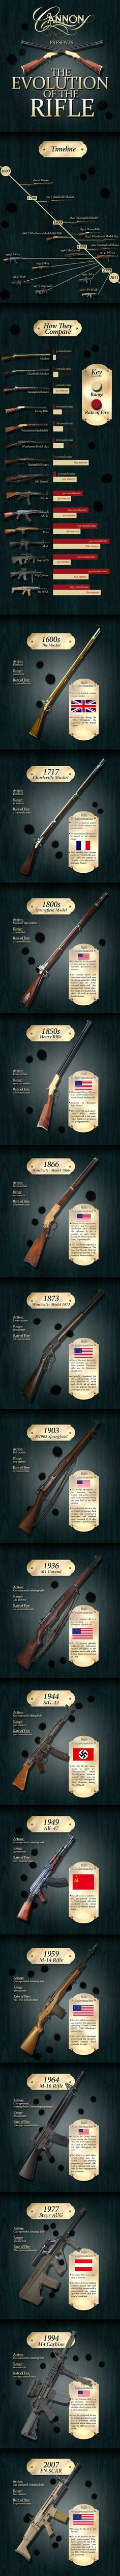 Evolution of the Rifle by Cannon